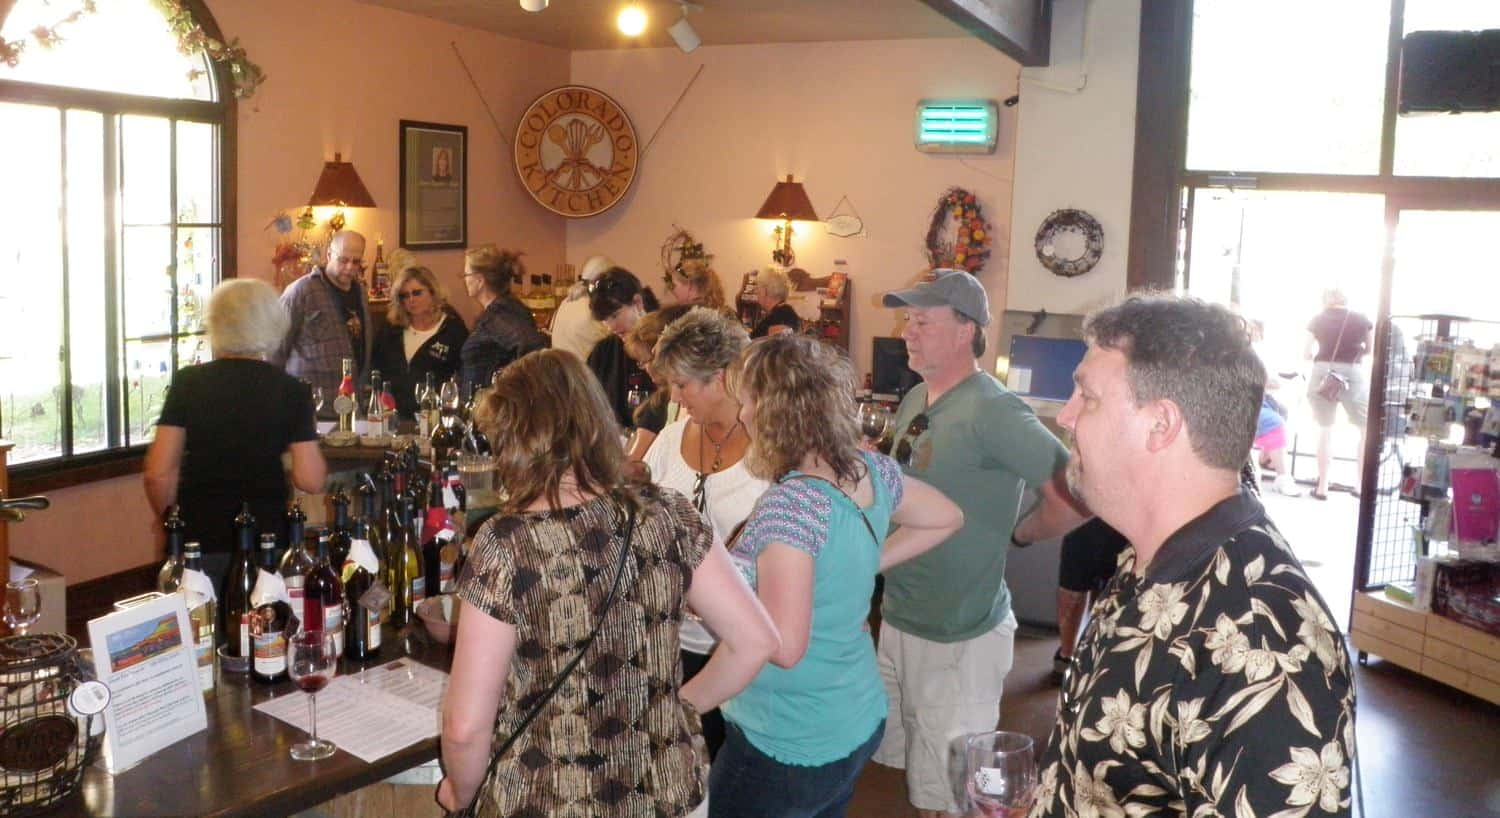 Group of people sampling wine at a wine tasting